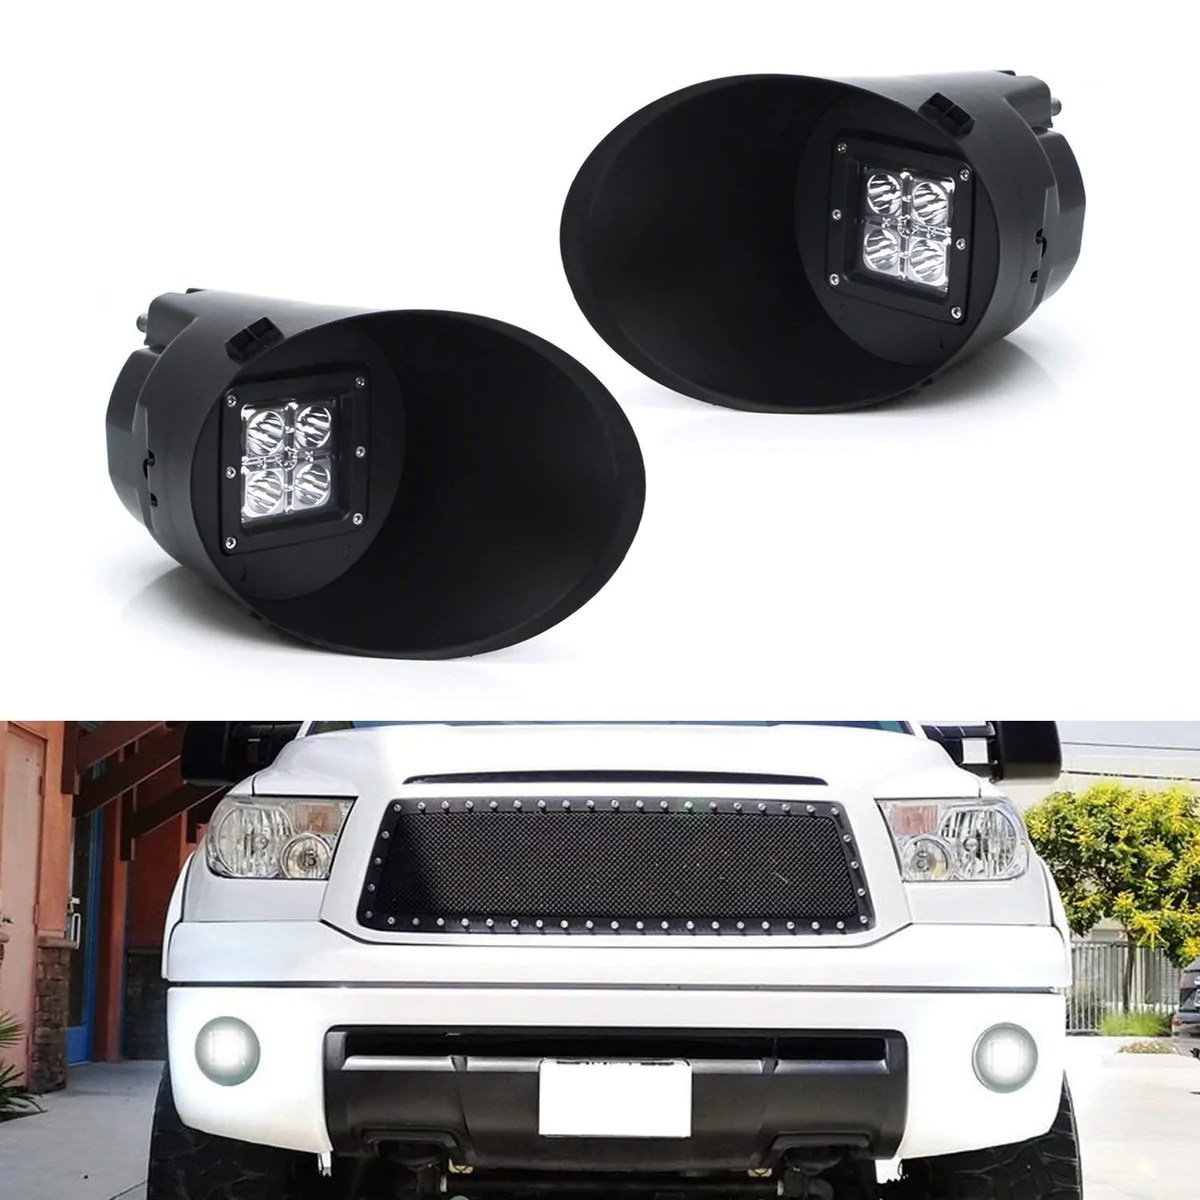 medium resolution of led pod light fog lamp kit for 2007 13 toyota tundra includes 2 20w high power cree led cubes foglight bezel covers fog location mounting brackets